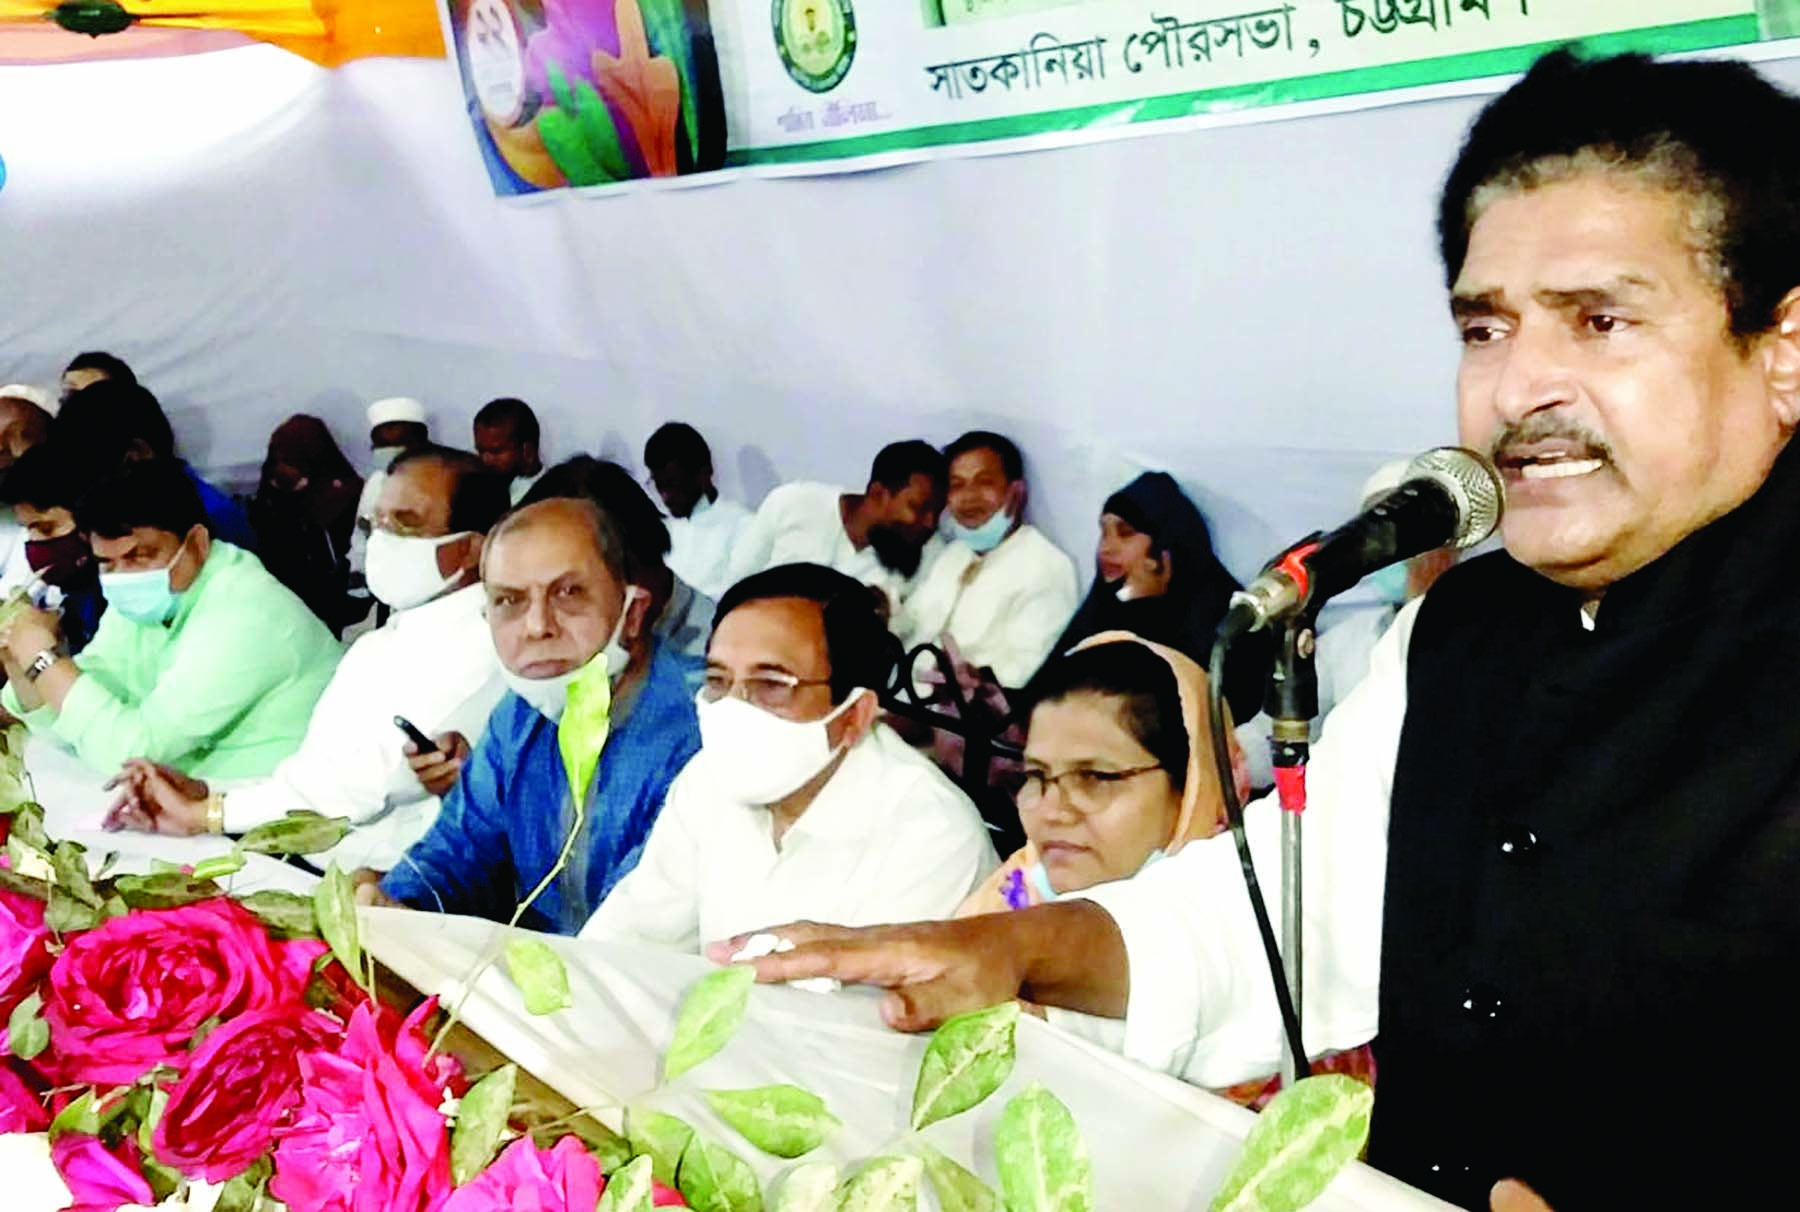 A welcome ceremony of newly elected Mayor and Councilors of Satkania Pourashova was held at the Auditorium of Satkania Pouro High School recently. Mofizur Rahman, General Secretary of South district Awami Legue was present as Chief Guest.